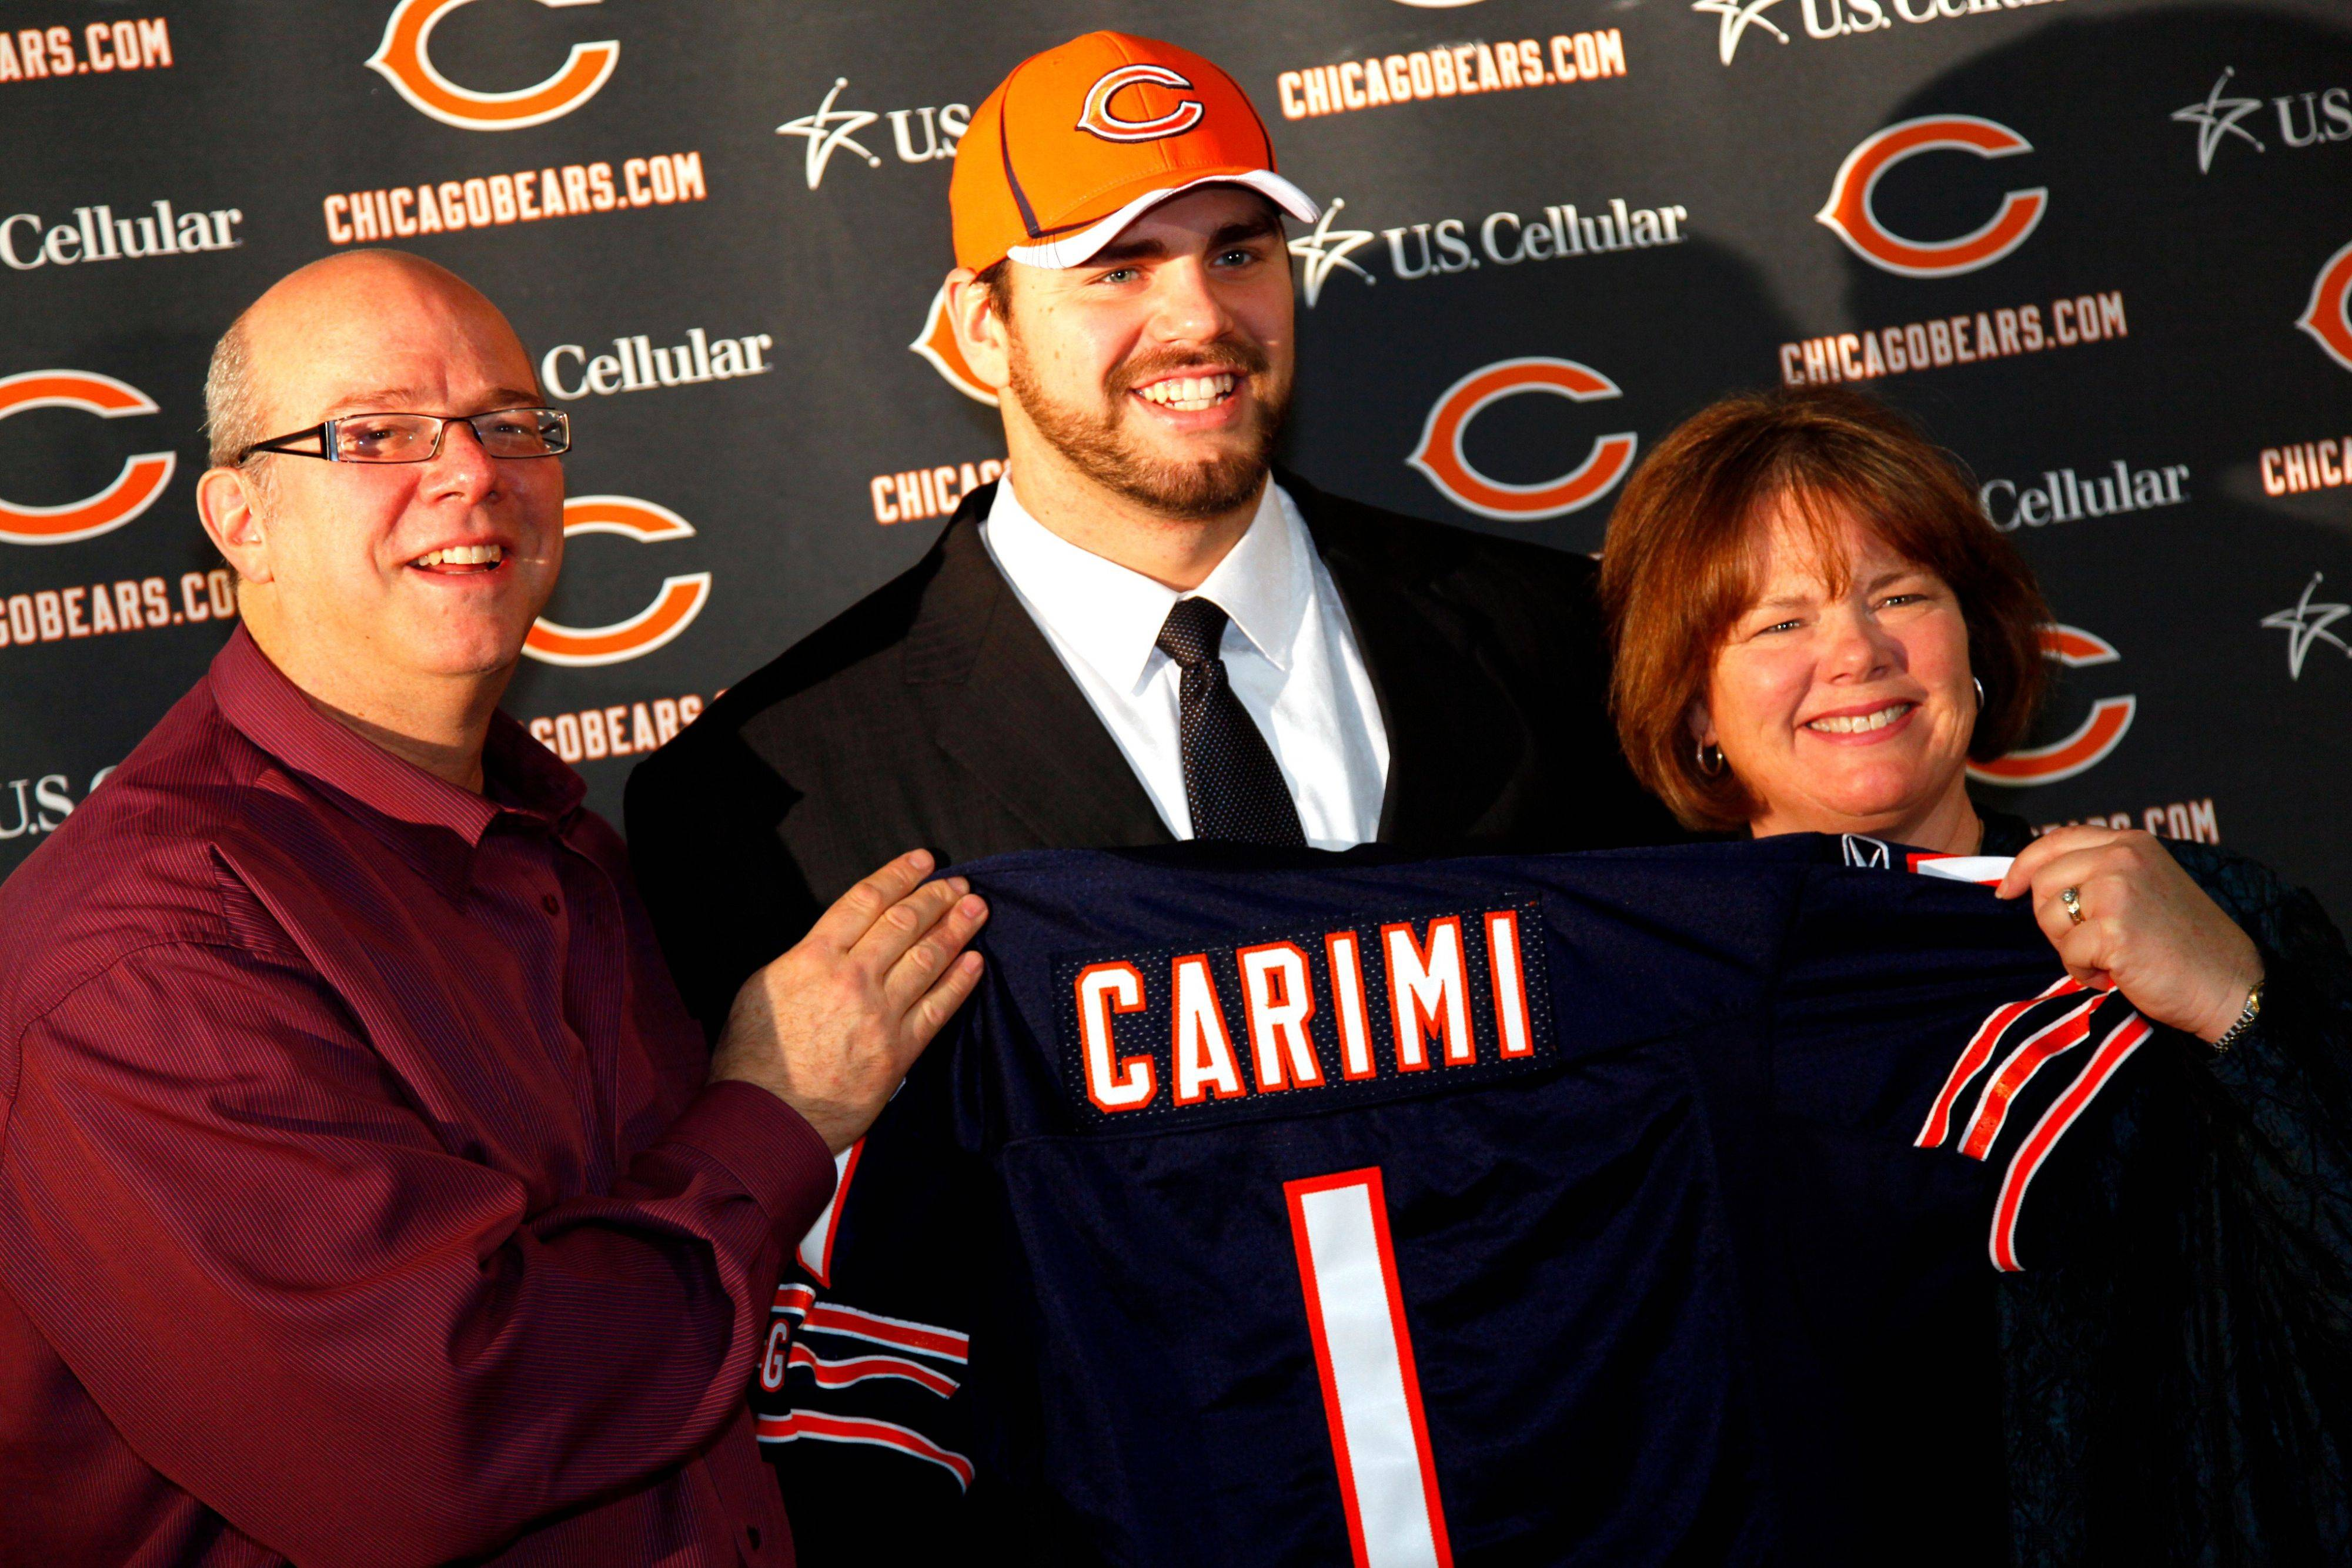 Bears' Carimi exactly where he wanted to be